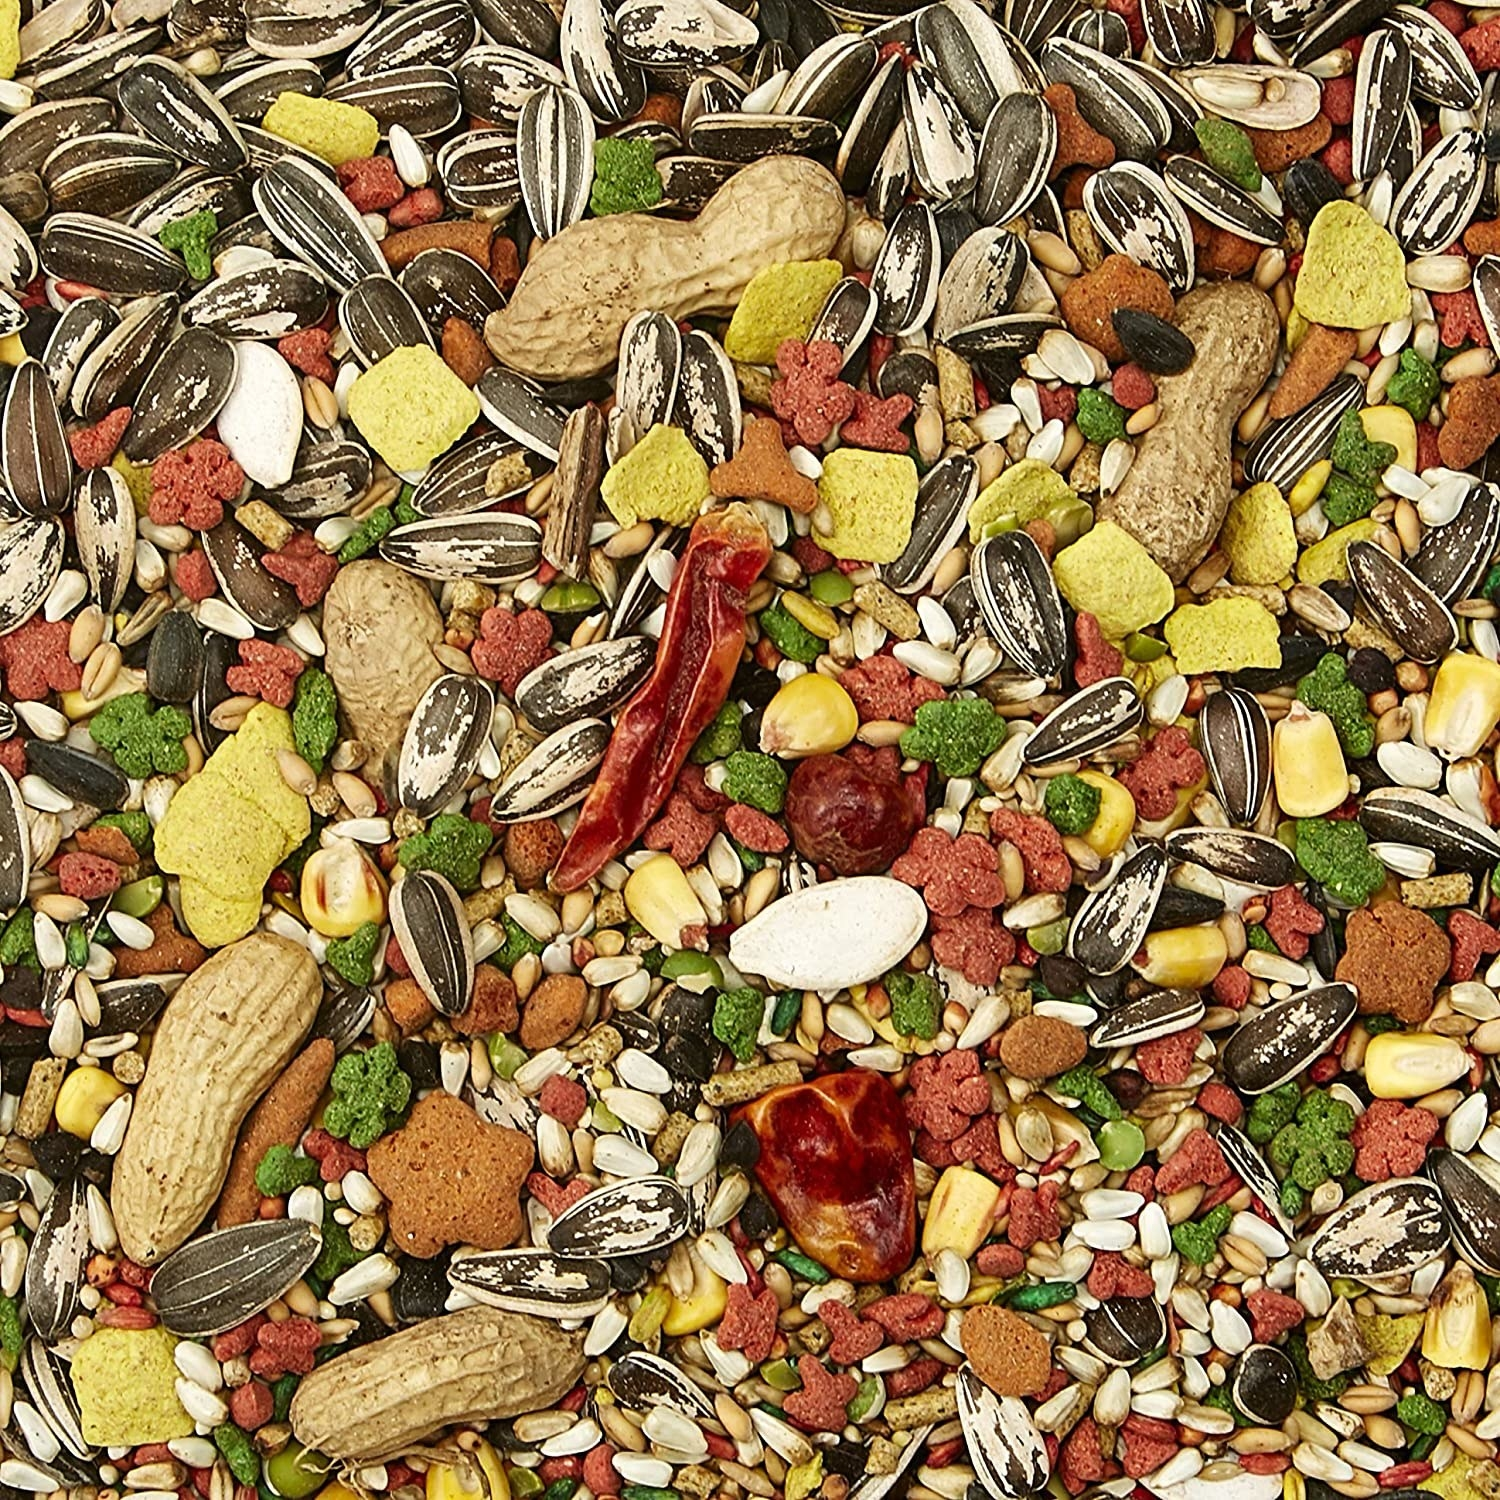 A close up of seeds, peanuts, corn kernels and other treats for parrots